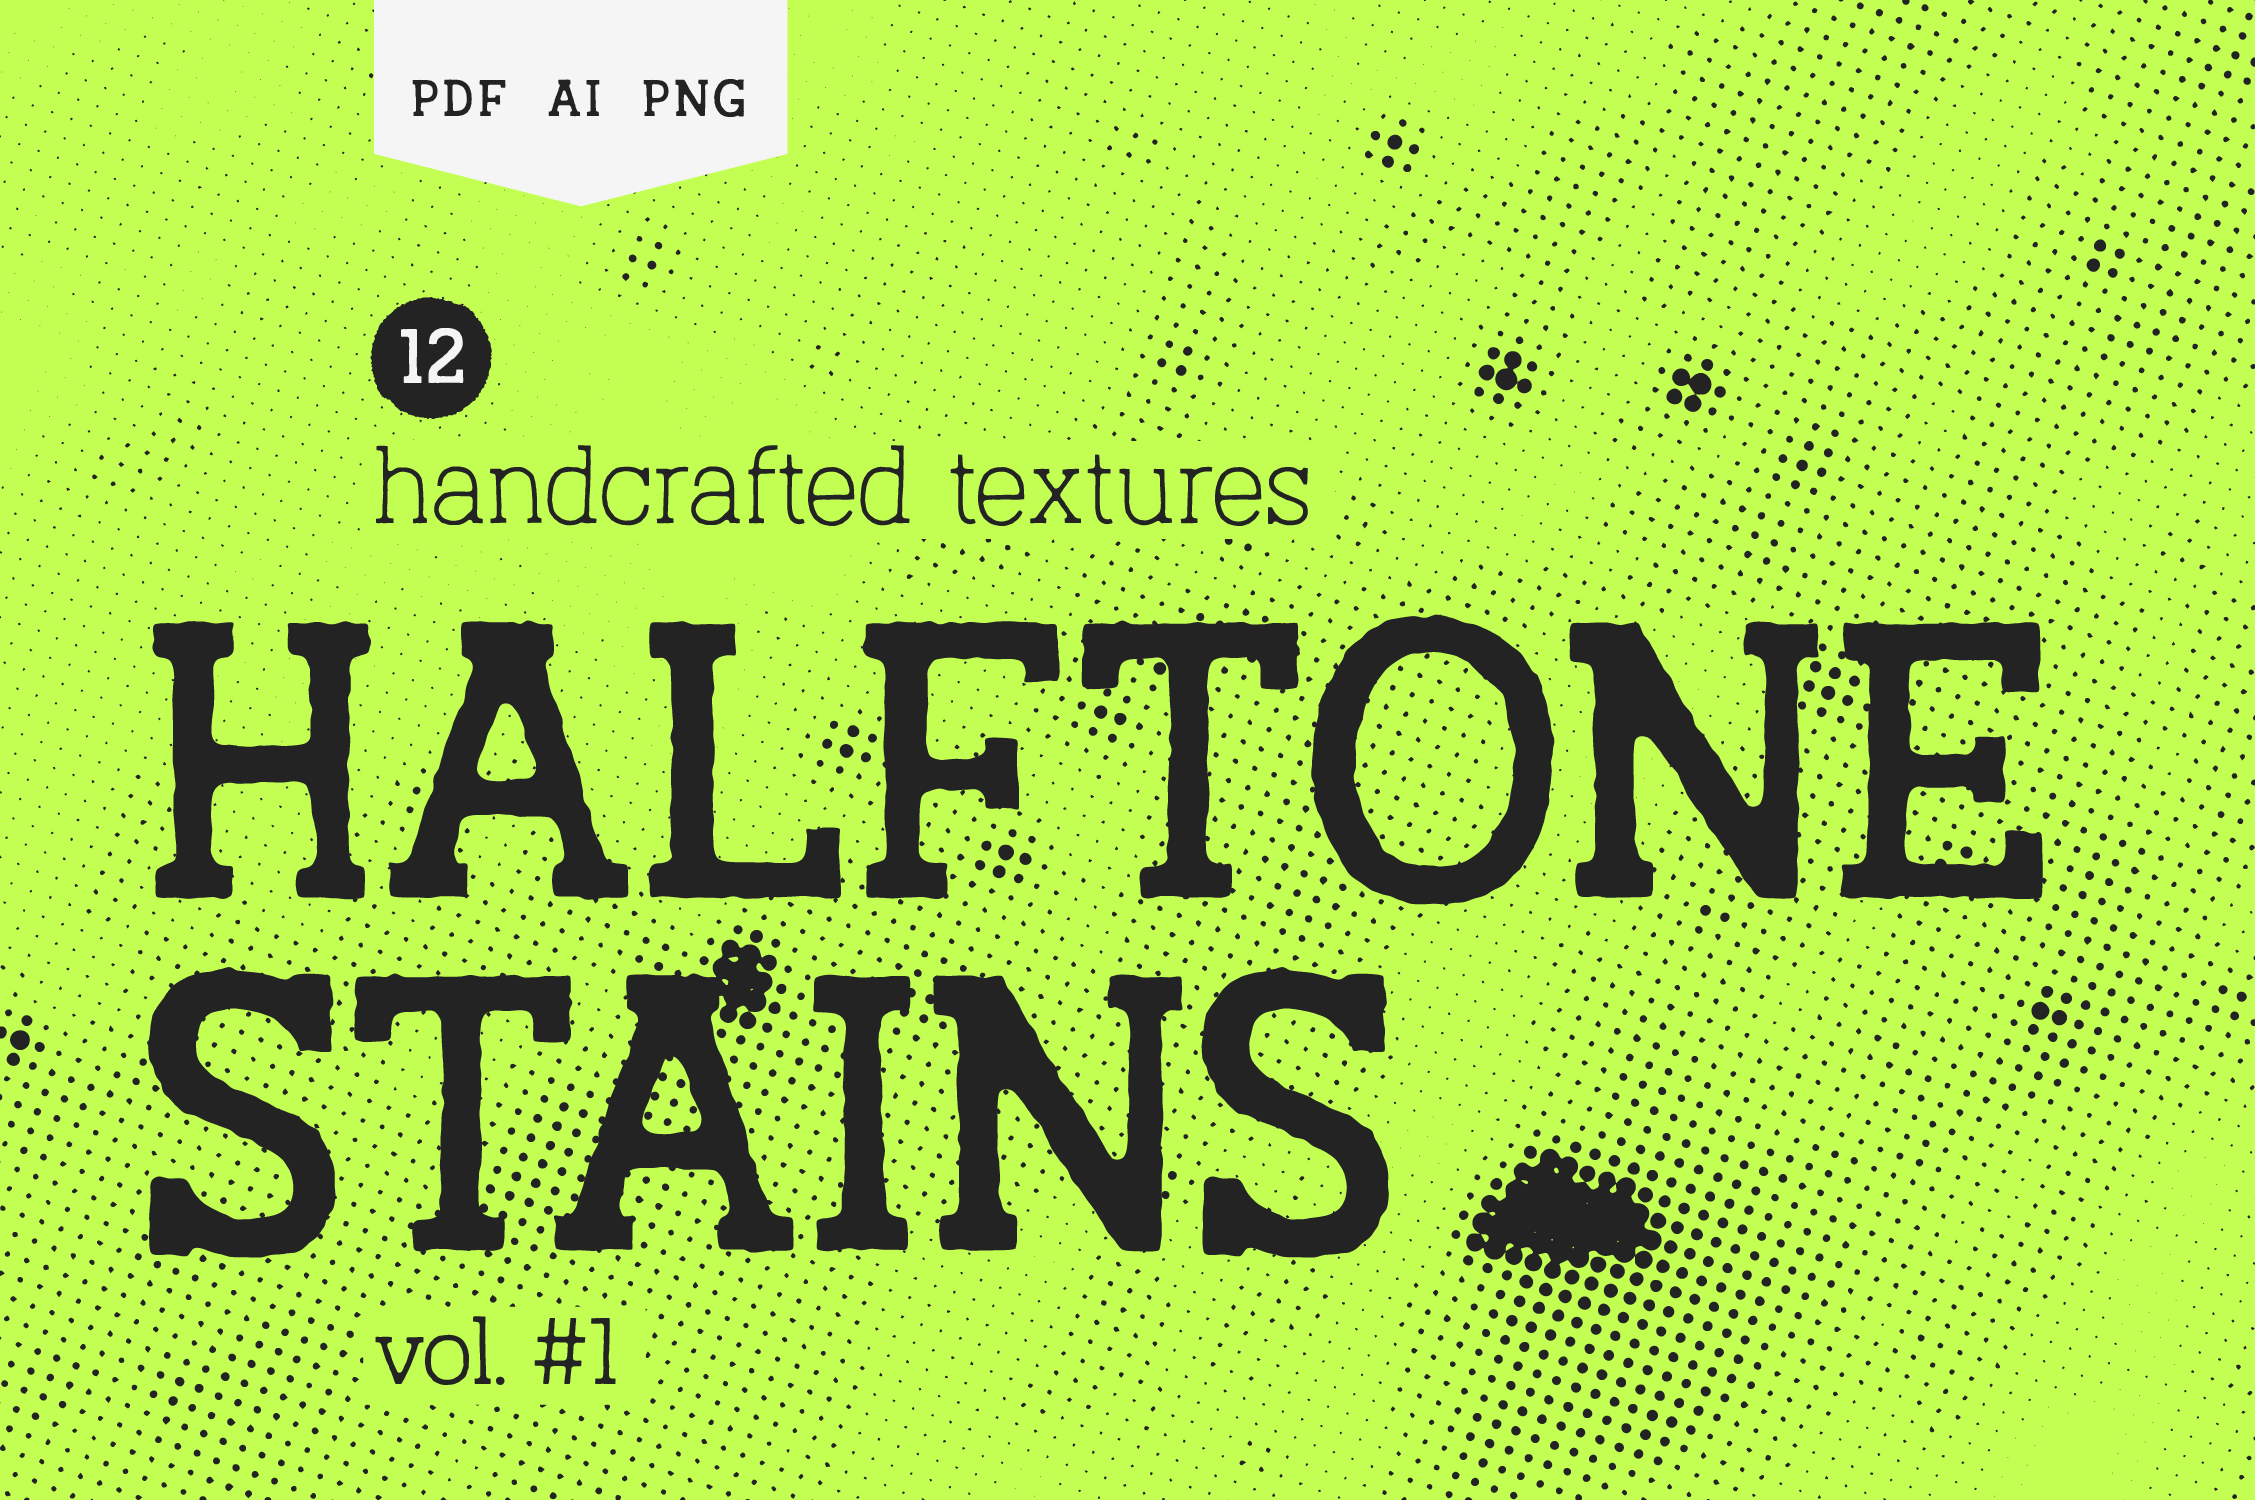 Halftone Stains Vol.#1 Texture Pack Graphic By antipixel Image 1